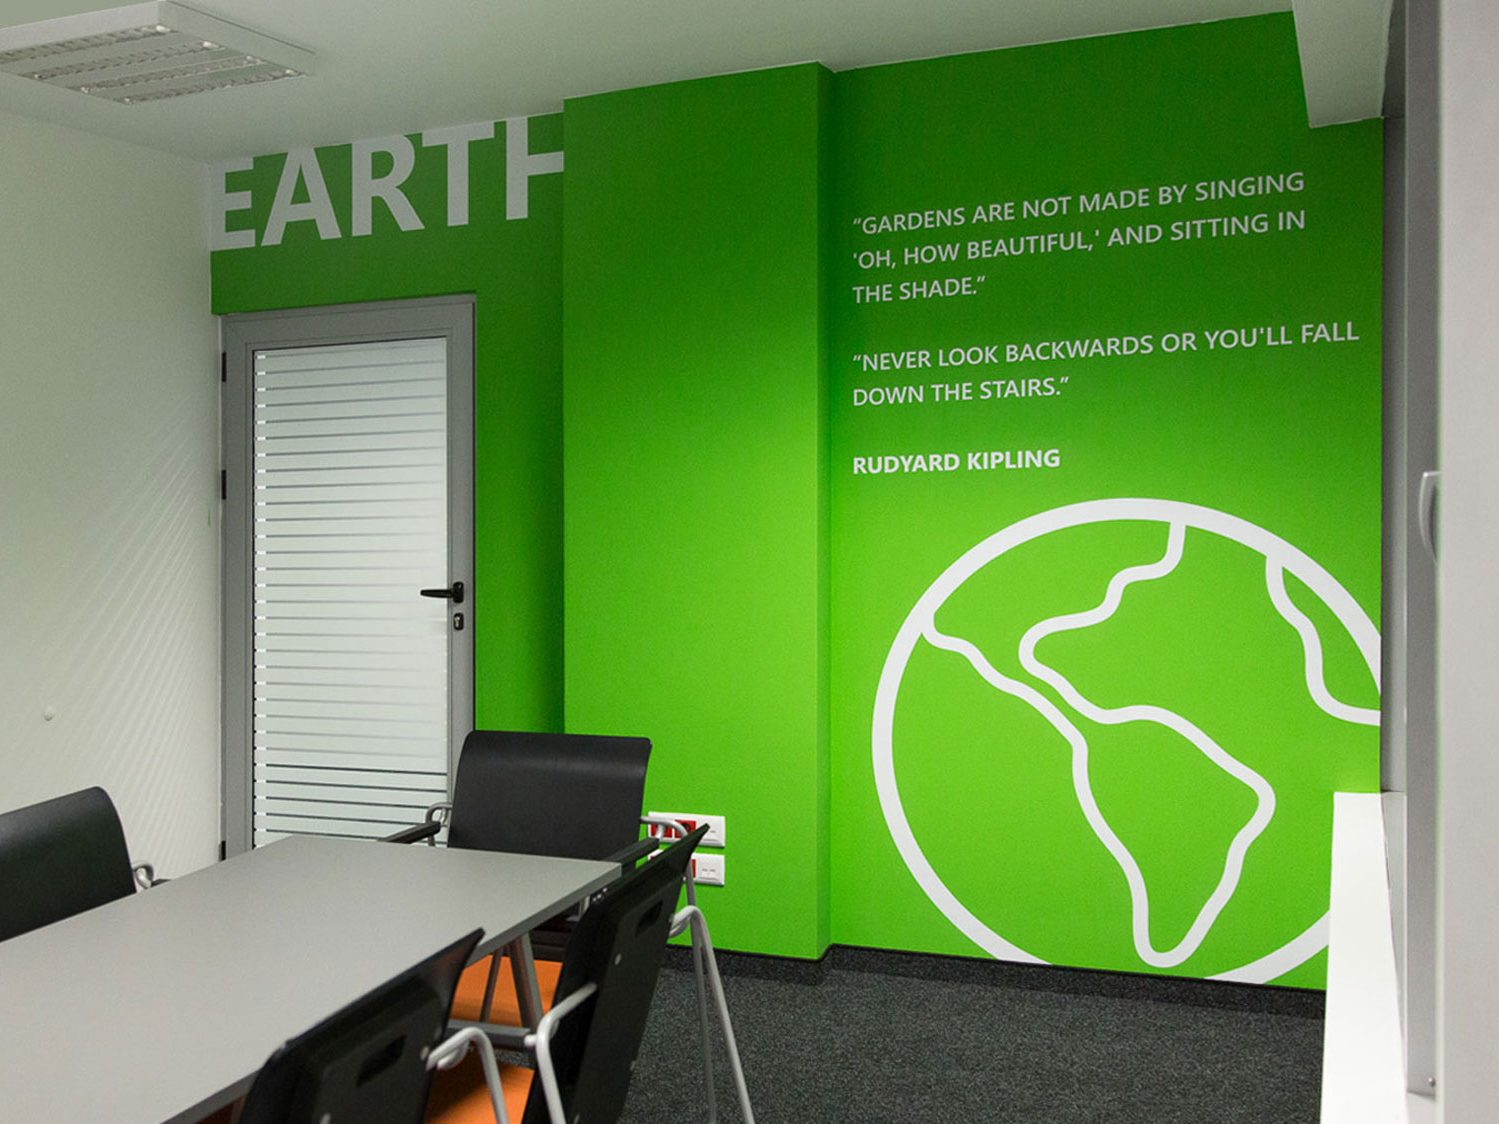 Meeting room with green wall dedicated to earth with Rudyard Kipling quote